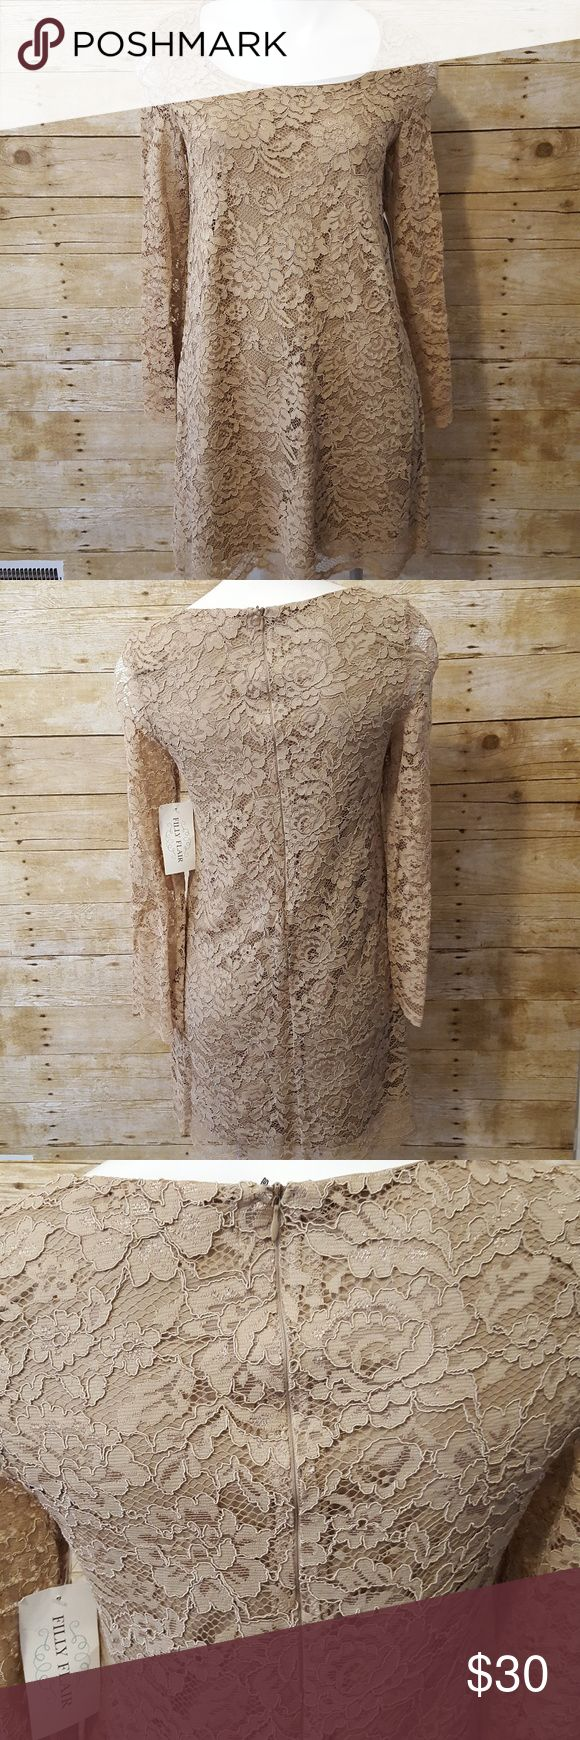 Filly Flair Lace Dress Filly Flair Women's Lace Dress Size Medium M Lined Bell Sleeve New. Filly Flair Dresses